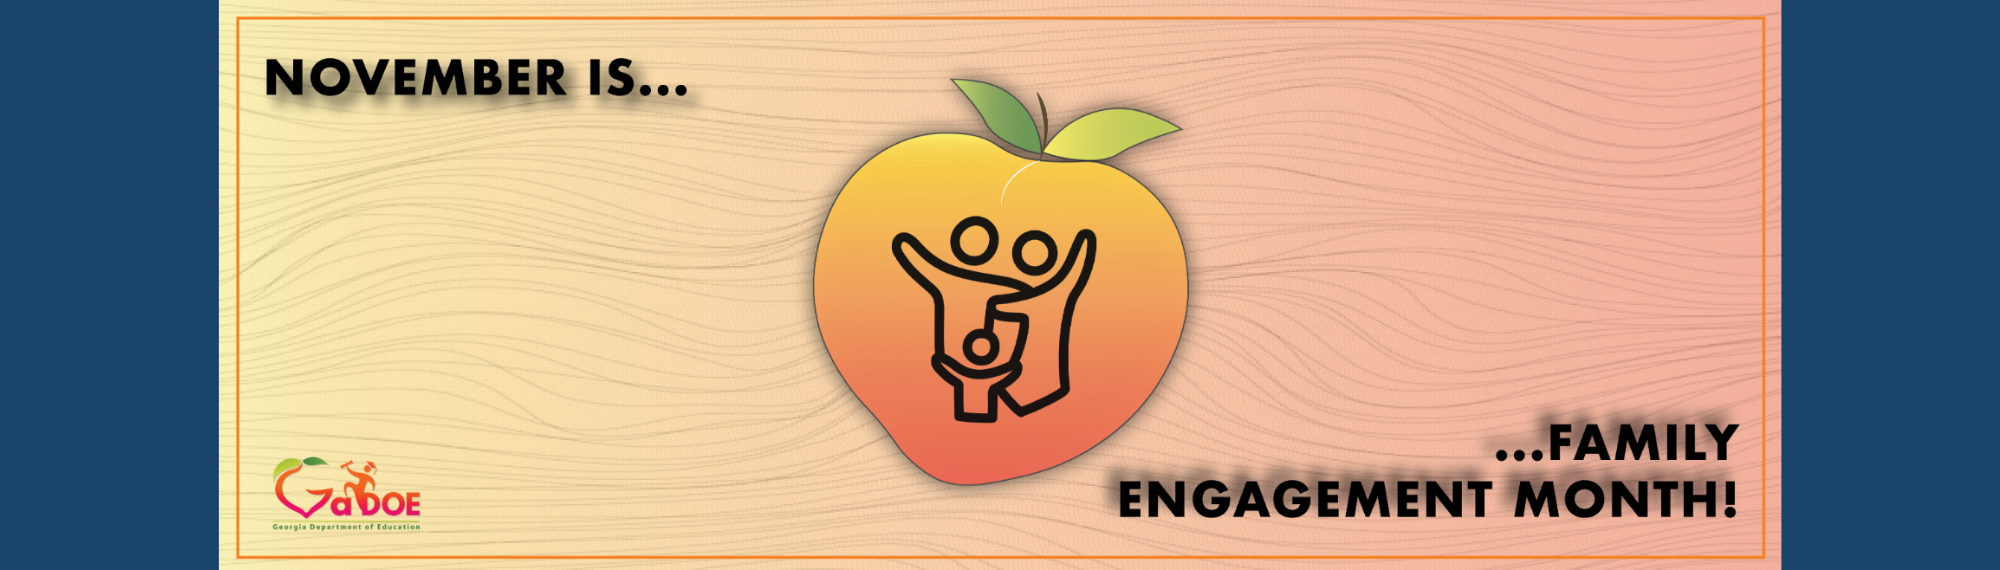 Family Engagement Month 2020